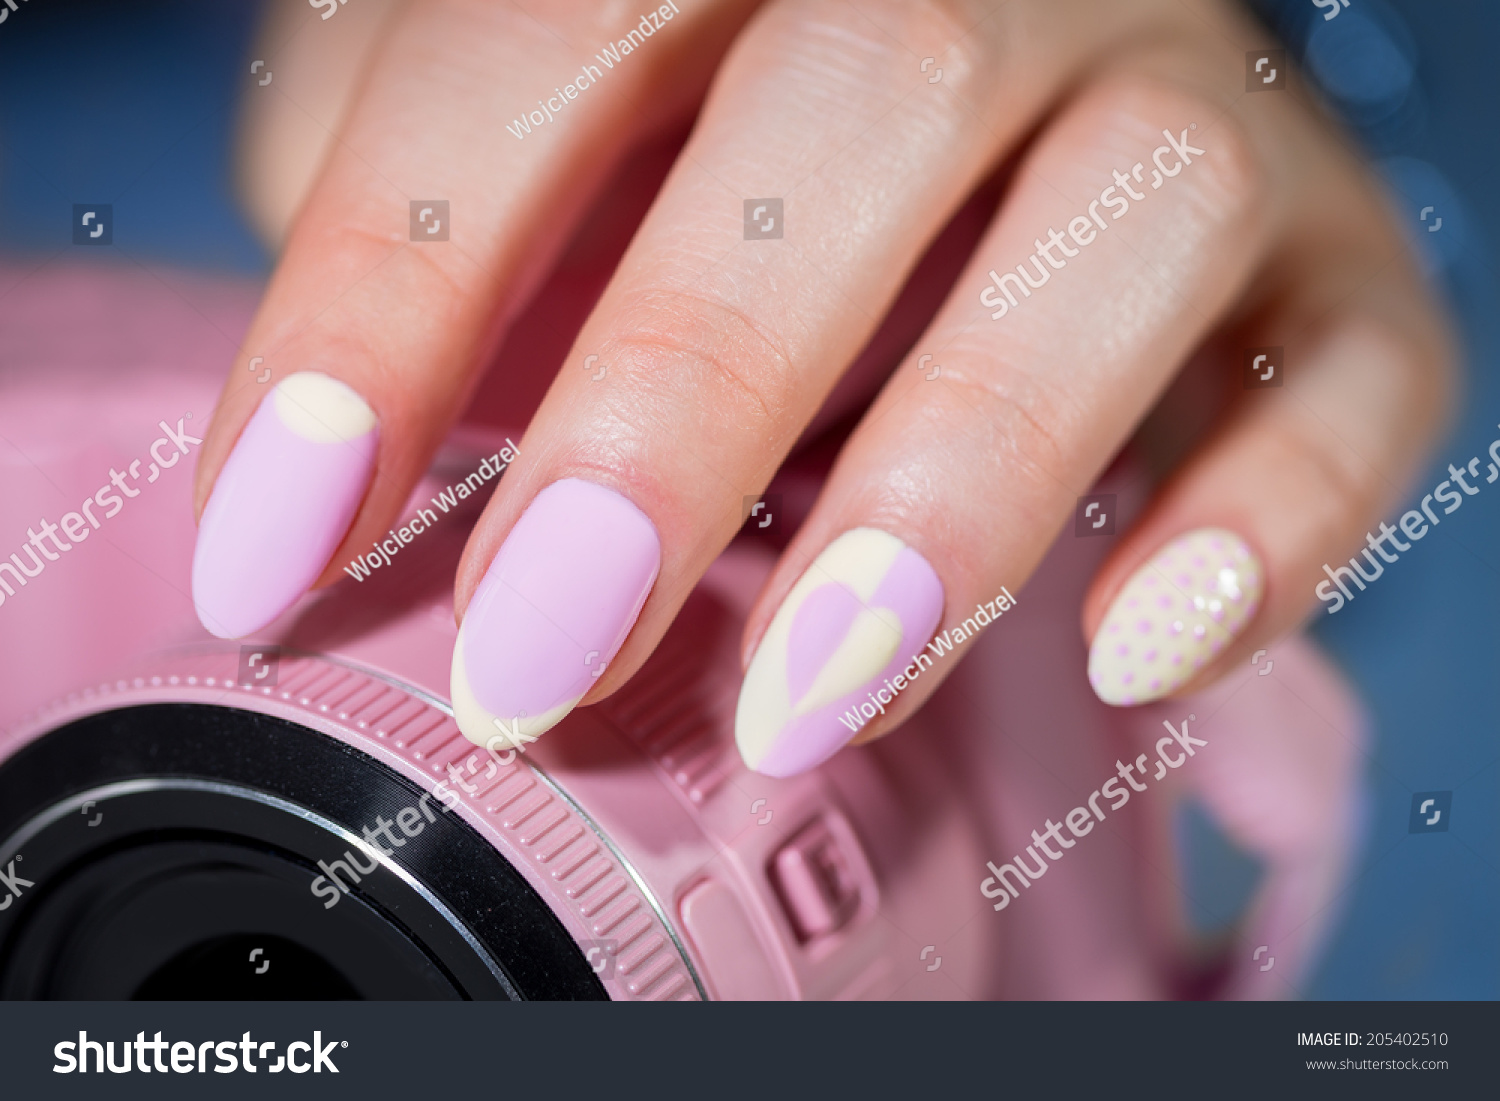 Long Curved Nails After Manicure Pink Stock Photo & Image (Royalty ...